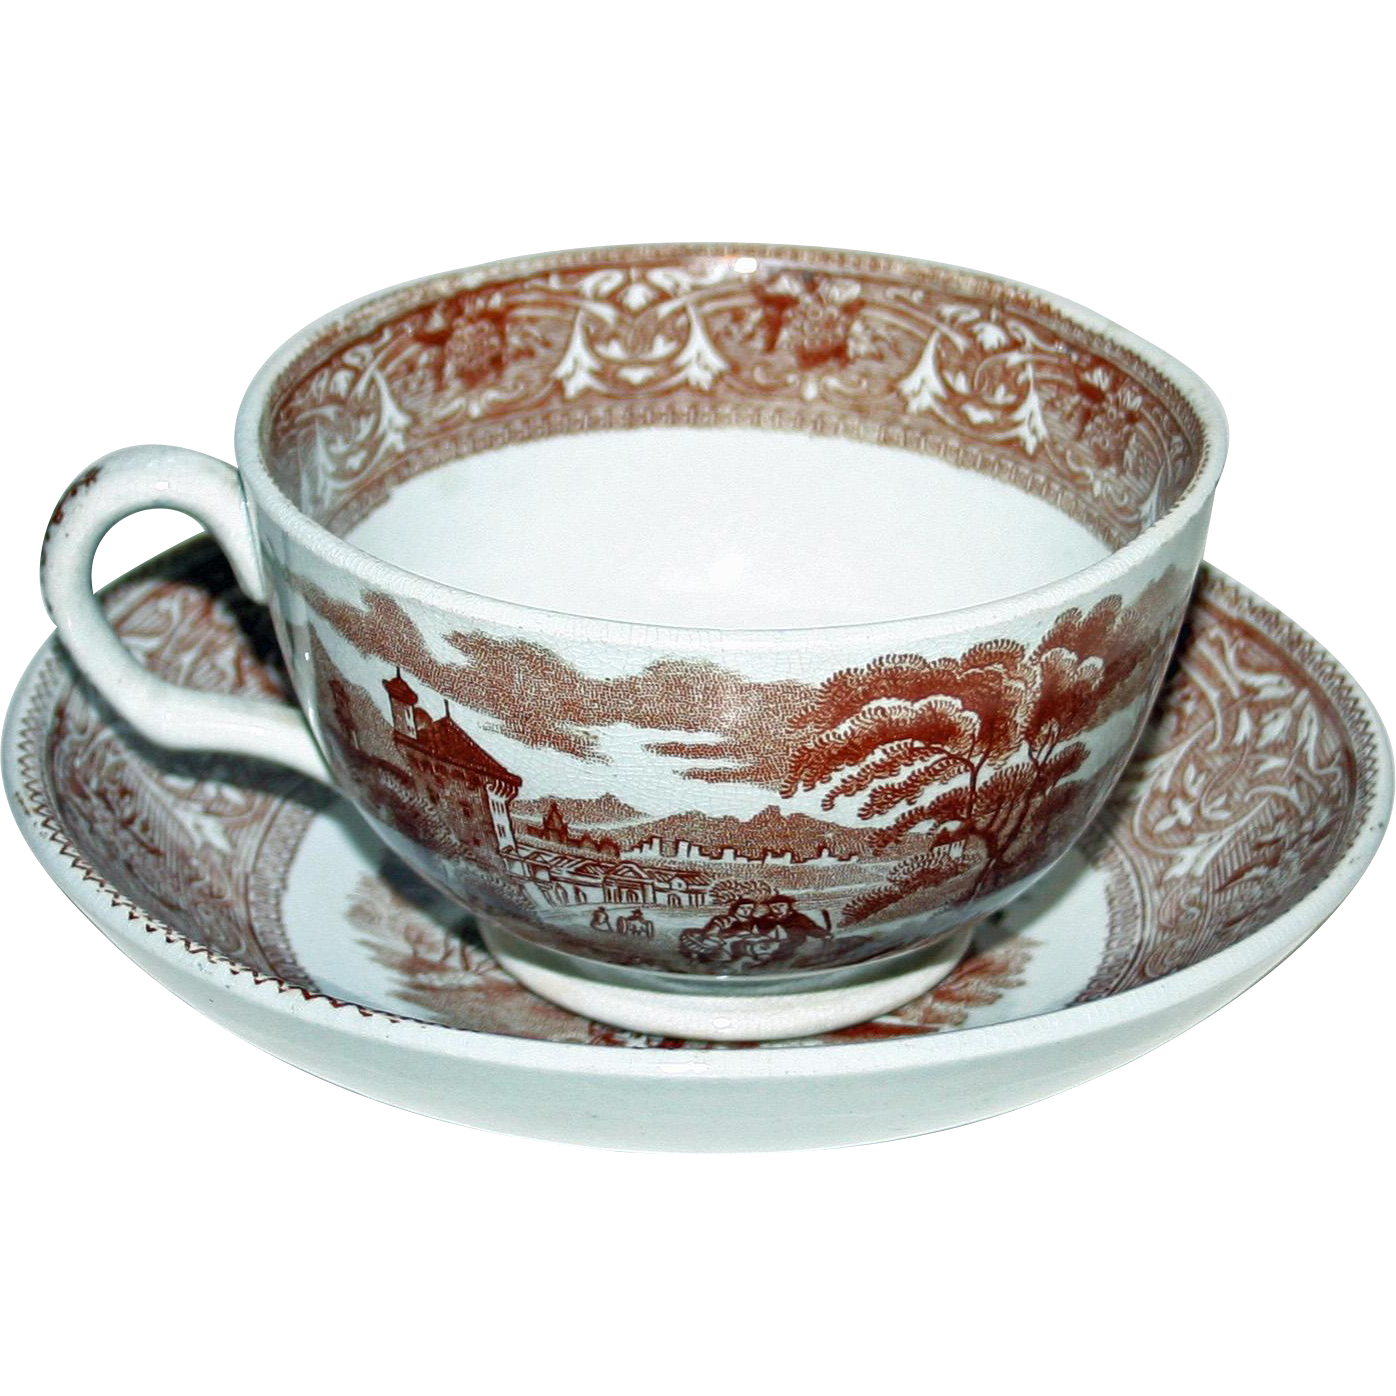 Antique Brown & White Transferware Cup and Saucer by Edge Malkin & Co.